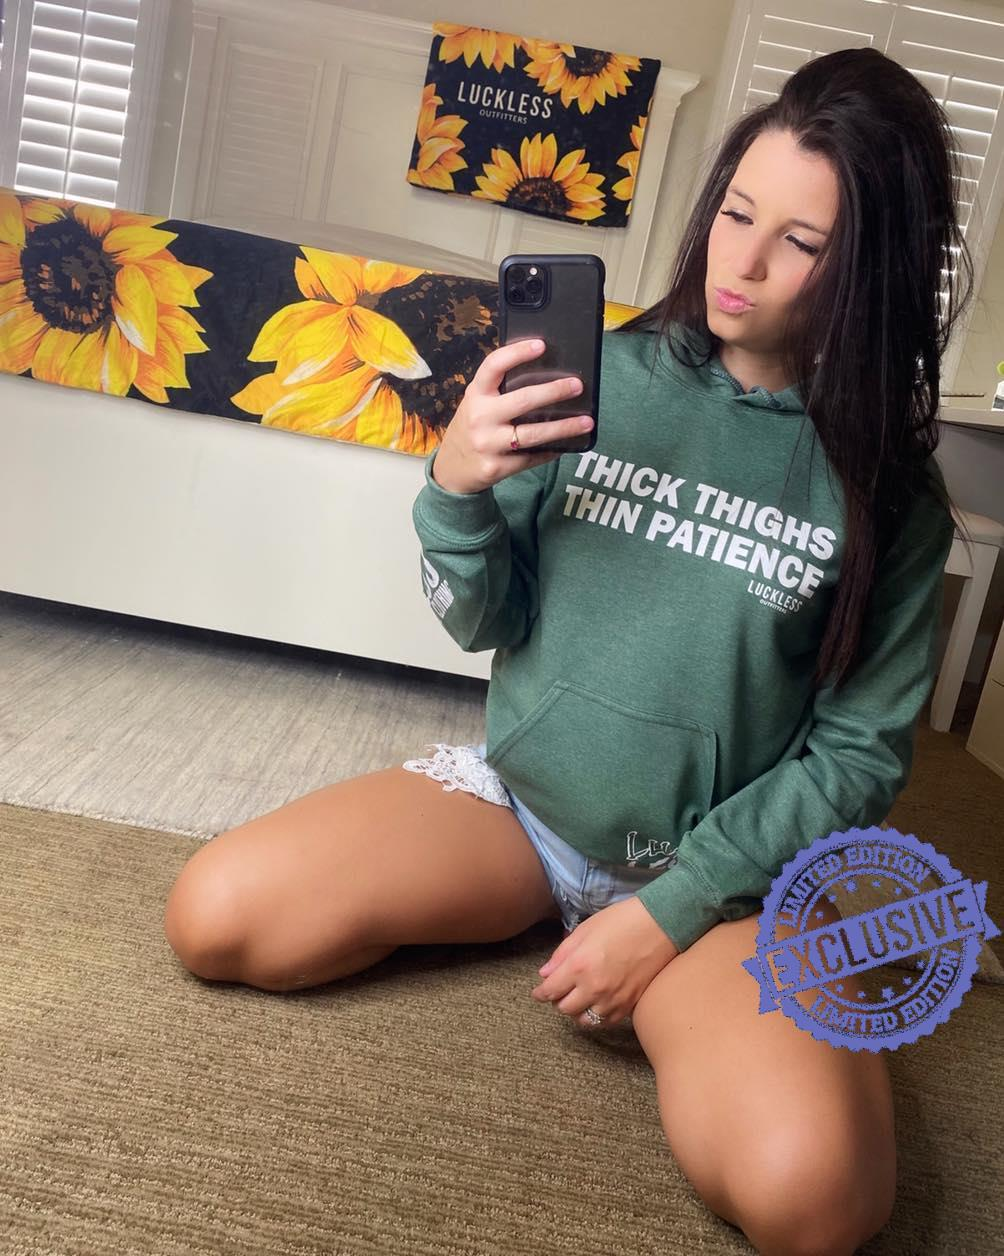 Thick thighs thin patience shirt